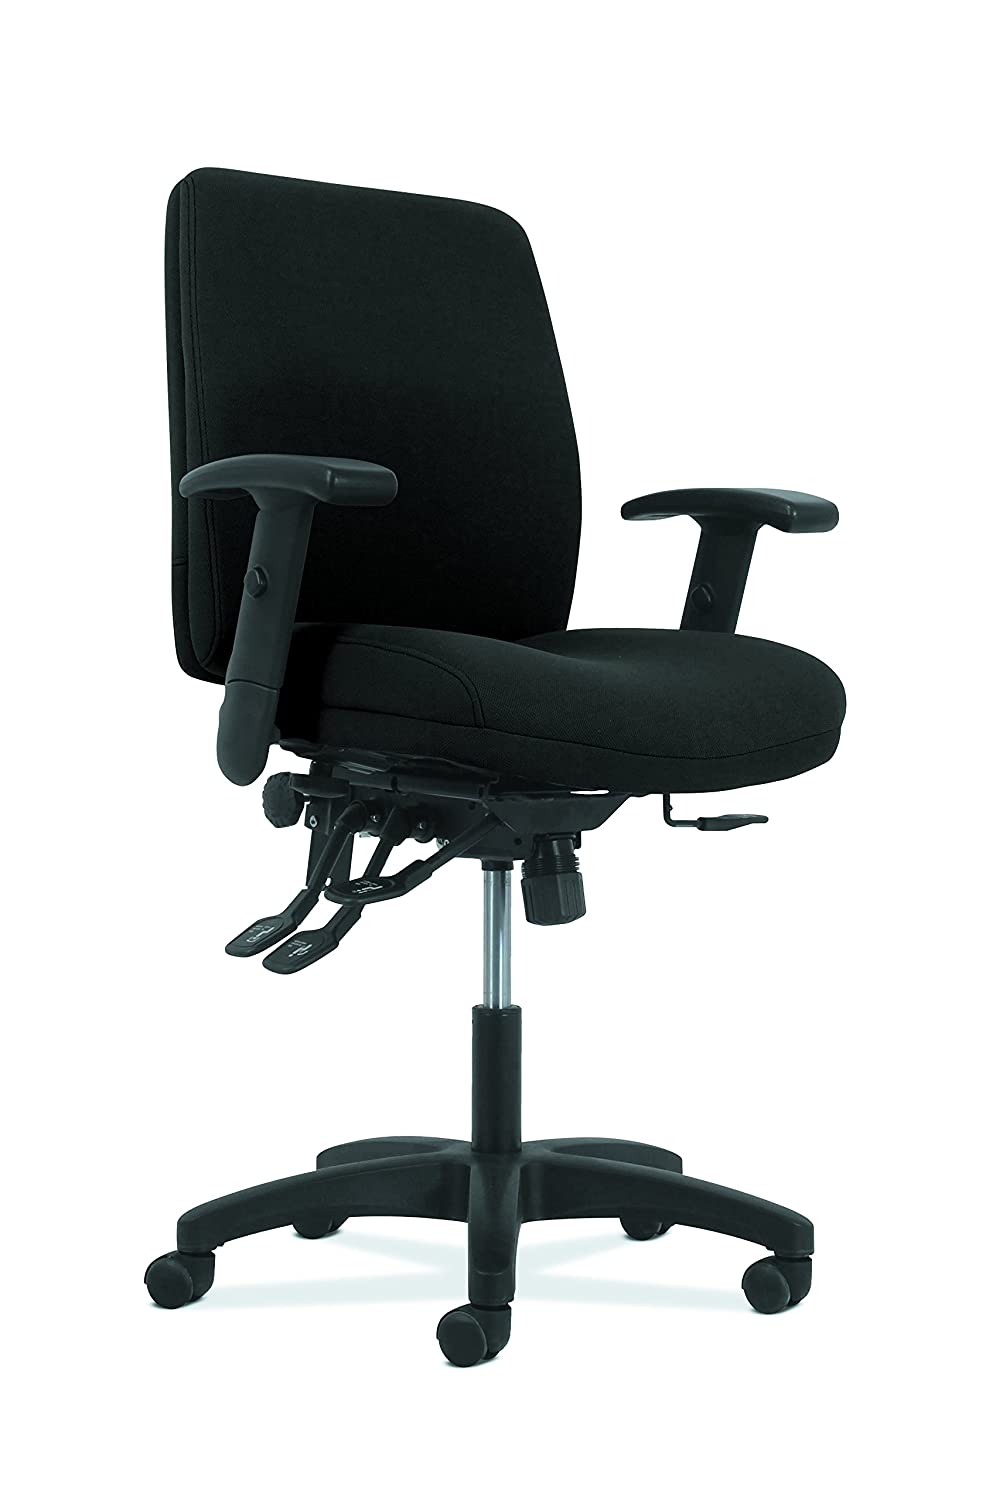 HON Network Mid-Back Task Chair – Asynchronous Computer Chair for Office Desk, Black Fabric HVL282.A2